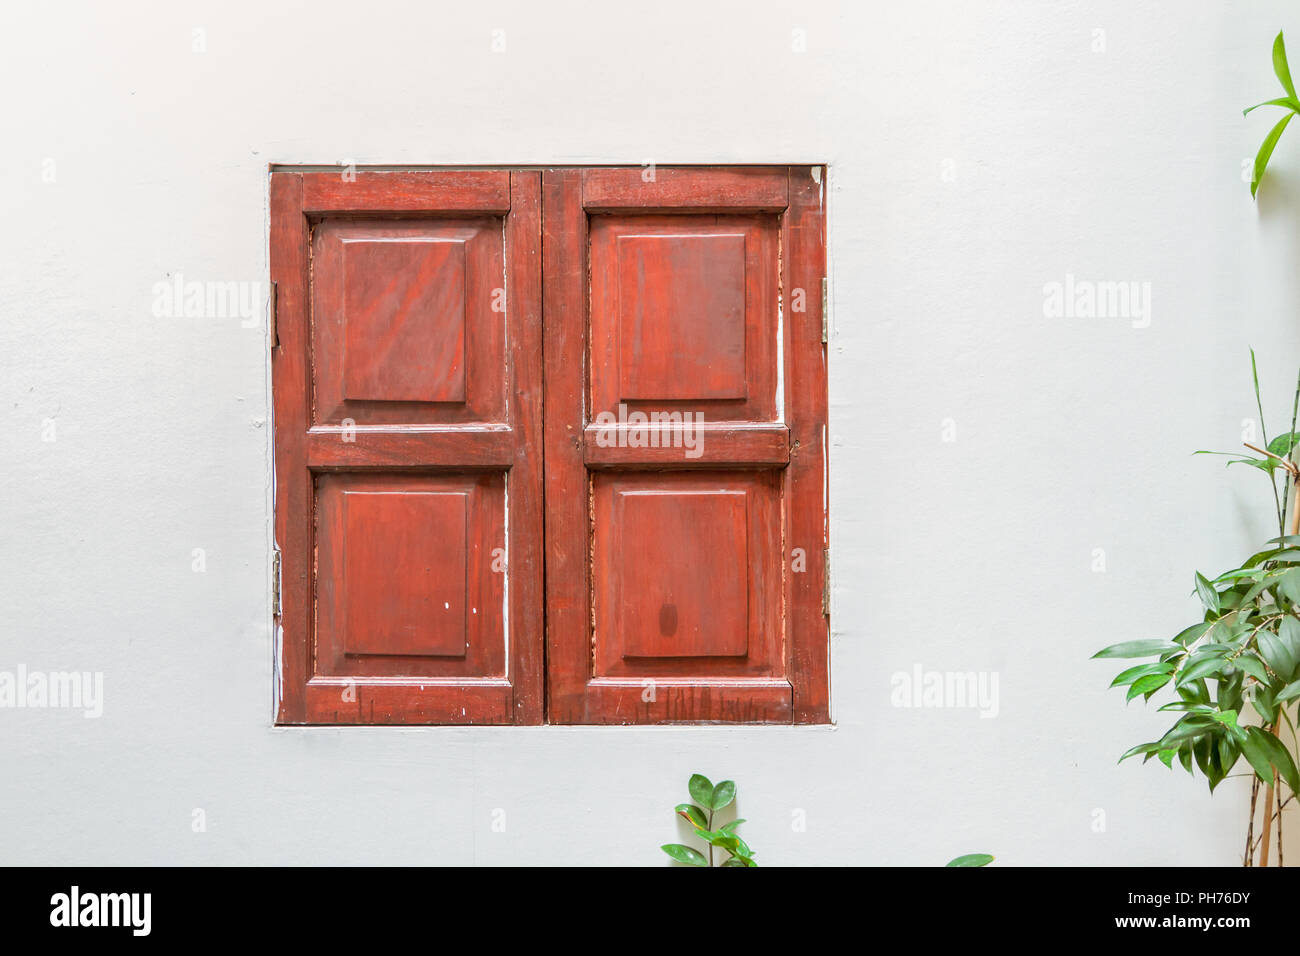 Window Of Old Wooden House Background For Decorate Design Stock Photo Alamy